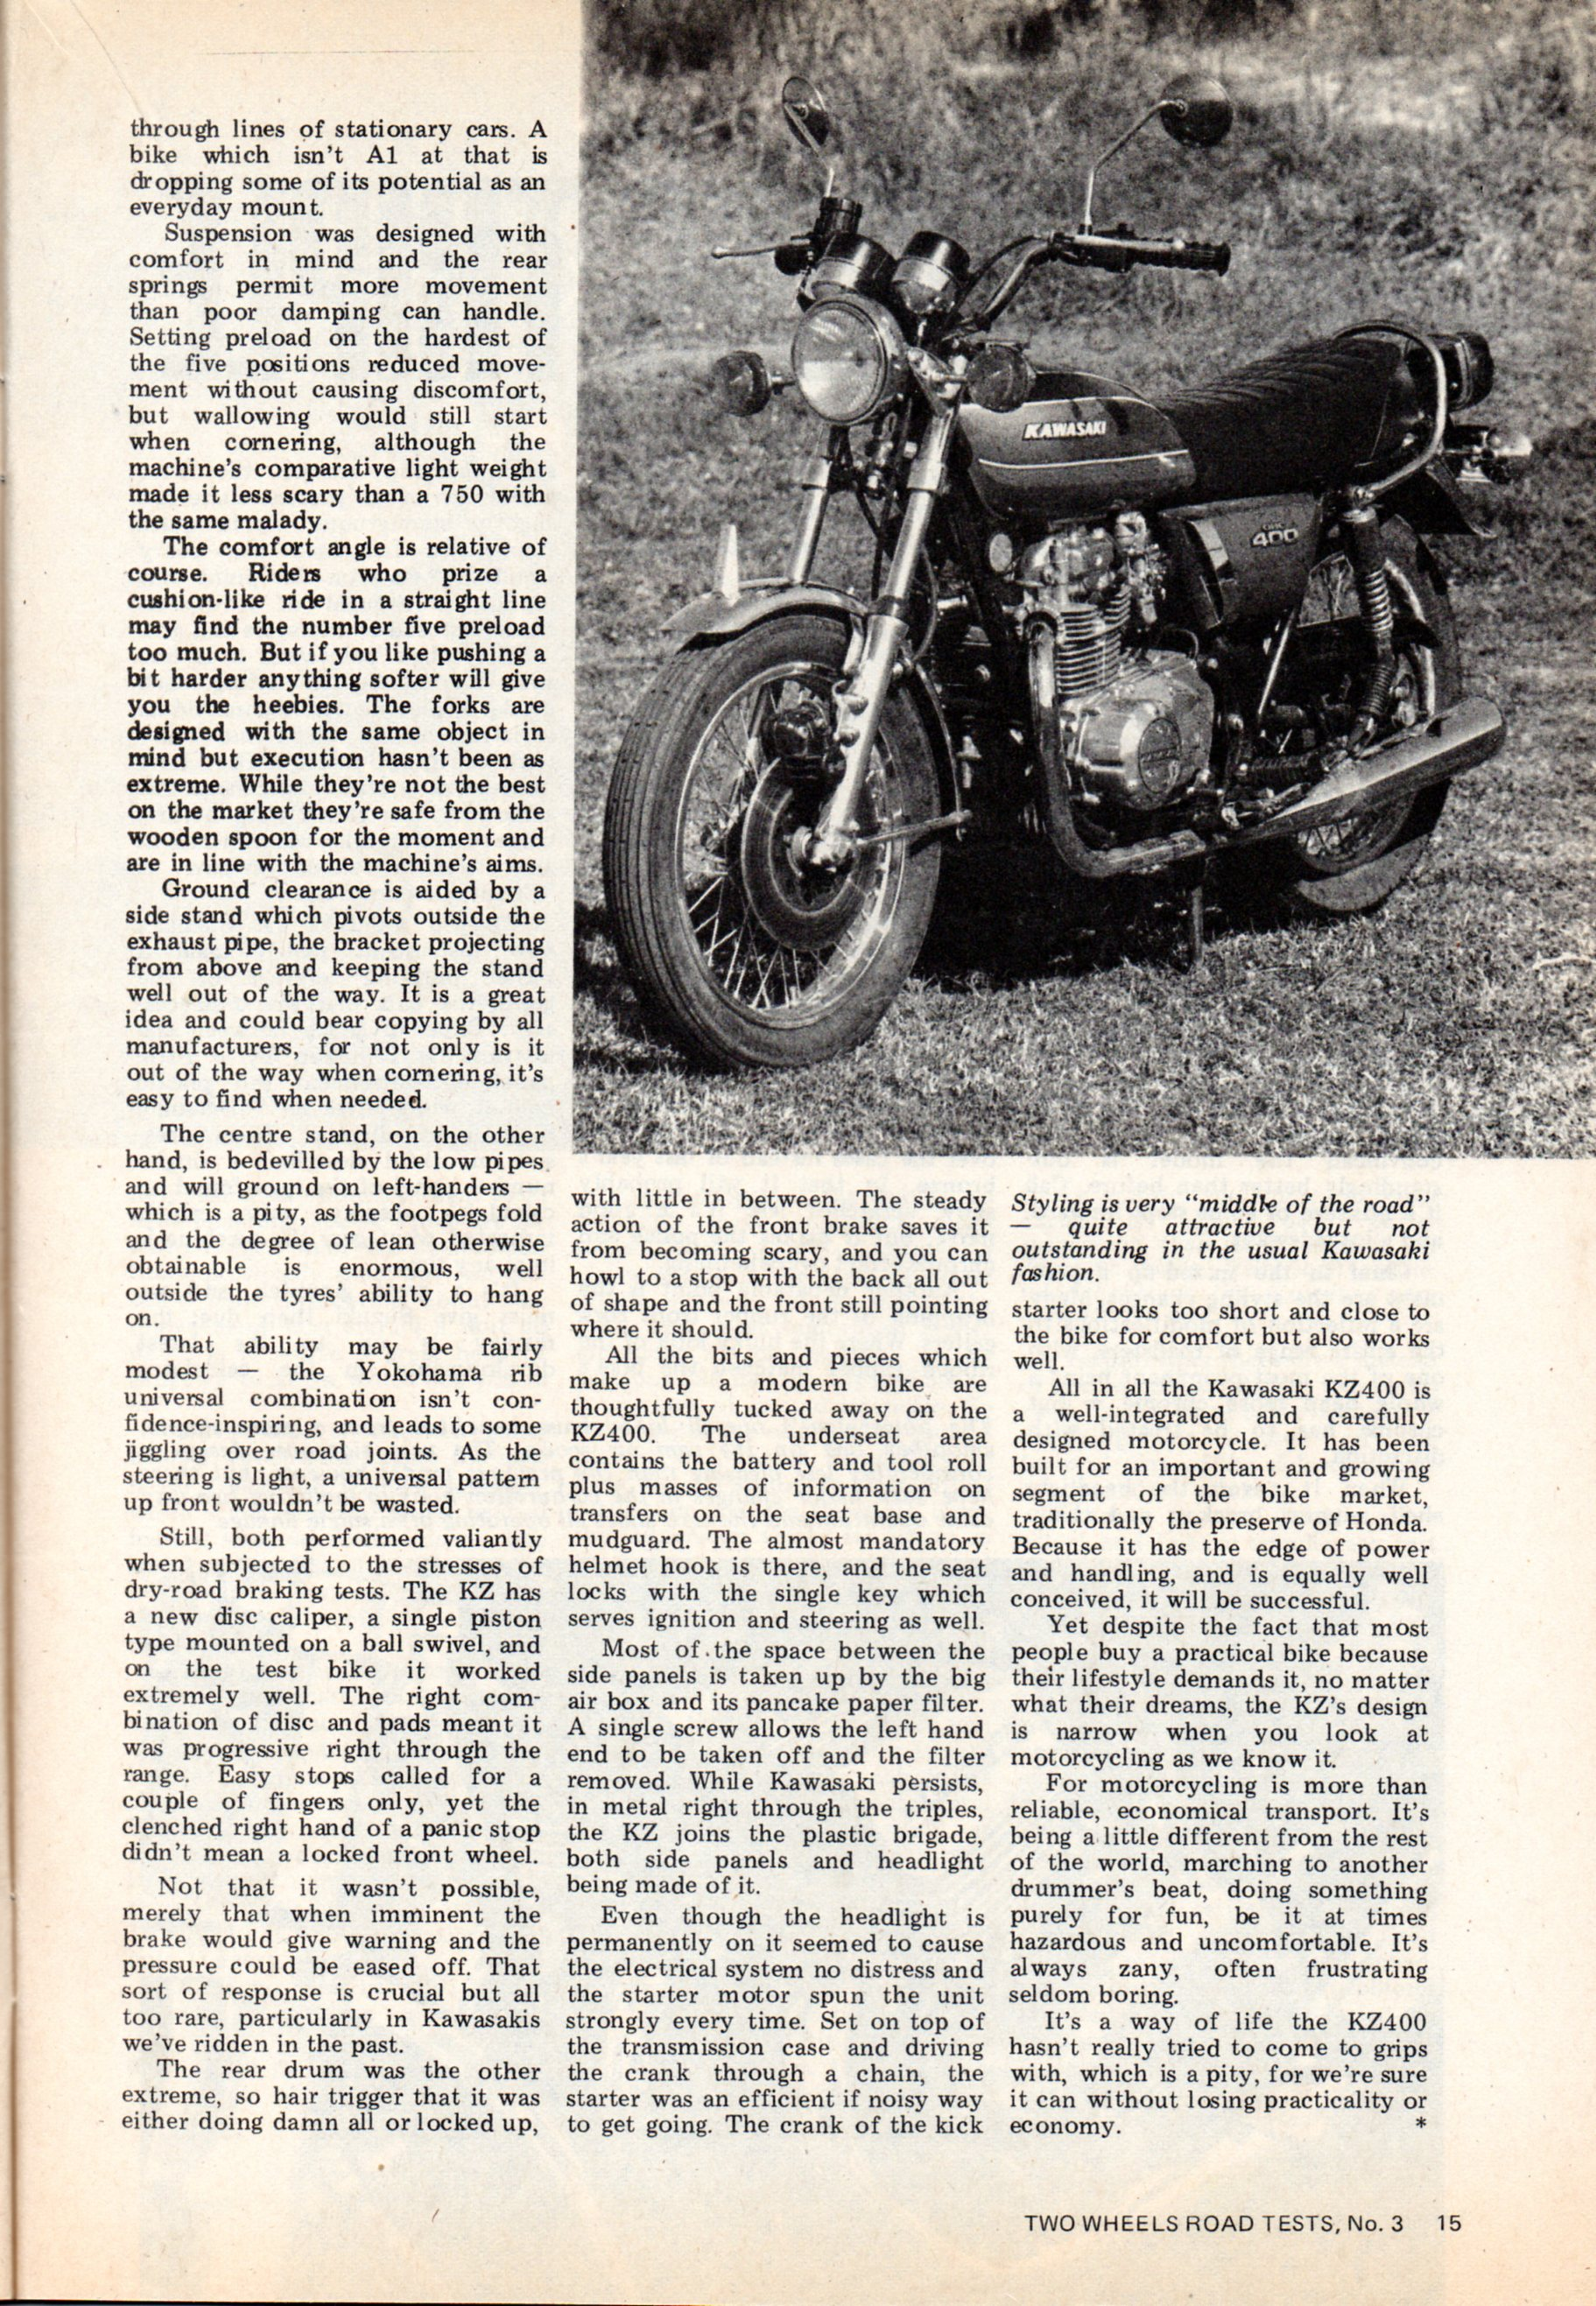 Two Wheels Road Test n°3  kz400   120.jpg